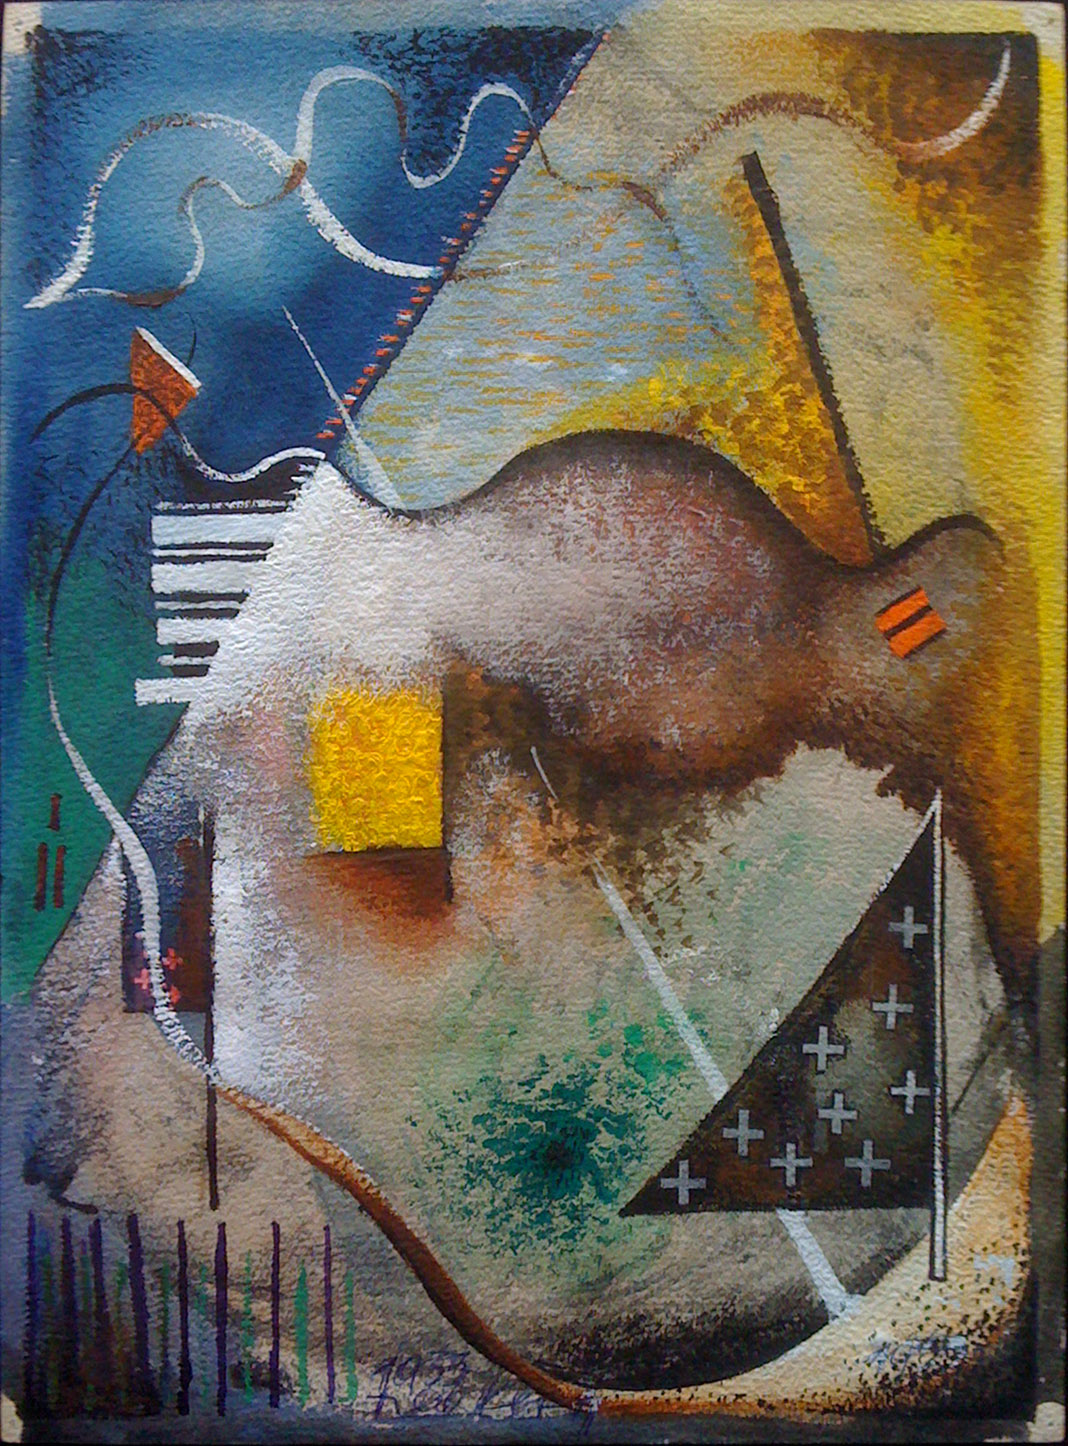 1933  Composition abstraite, aquarelle sur carton, 31 x 23 cm